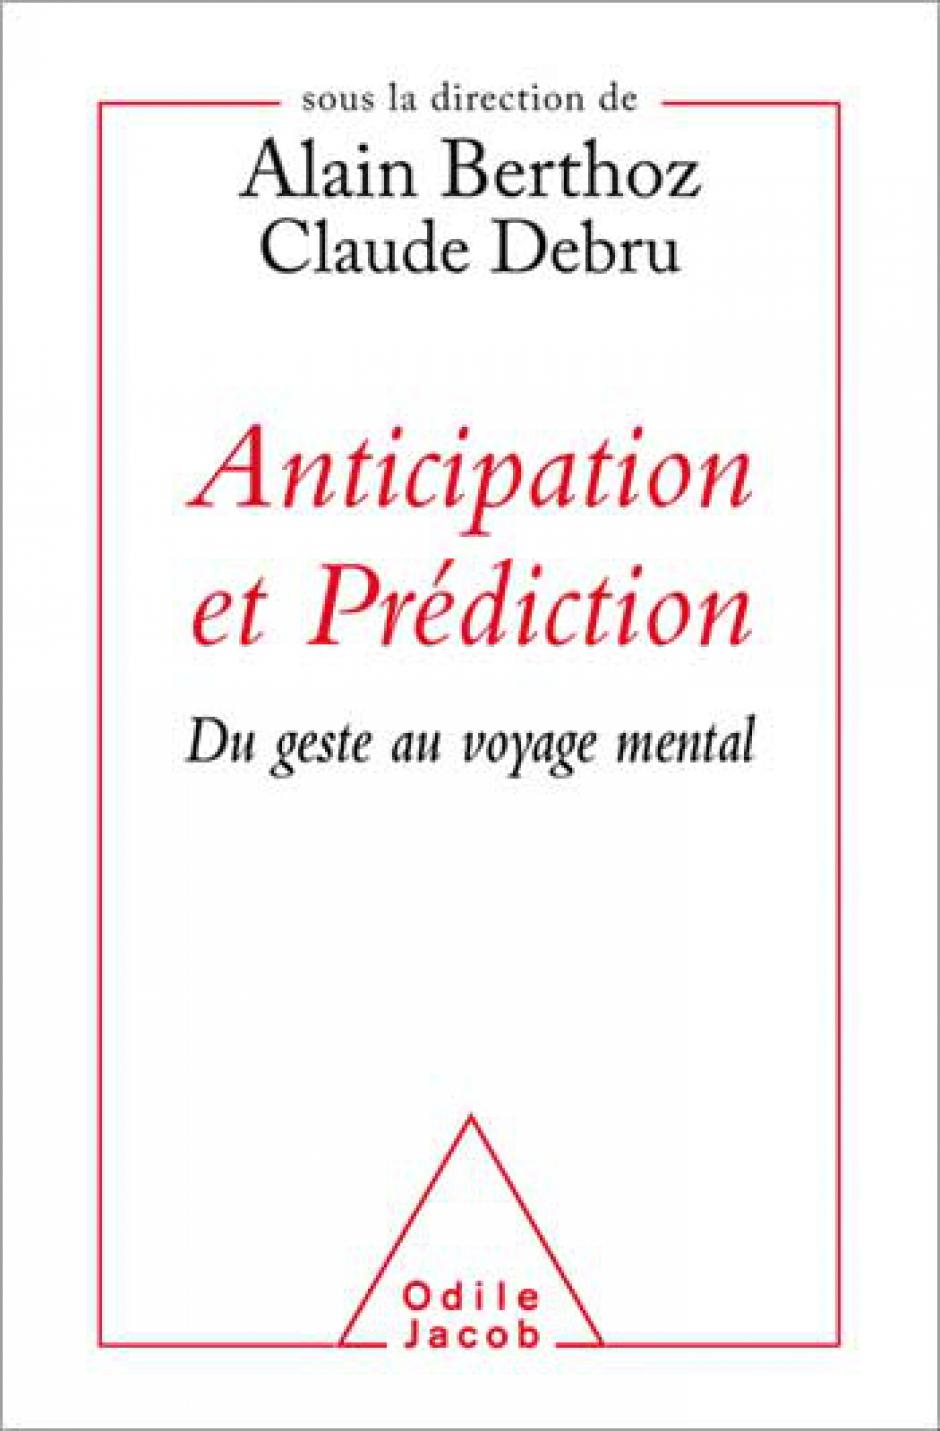 Alain Berthoz (DiR.), Anticipation et Prédiction Du geste au voyage mental